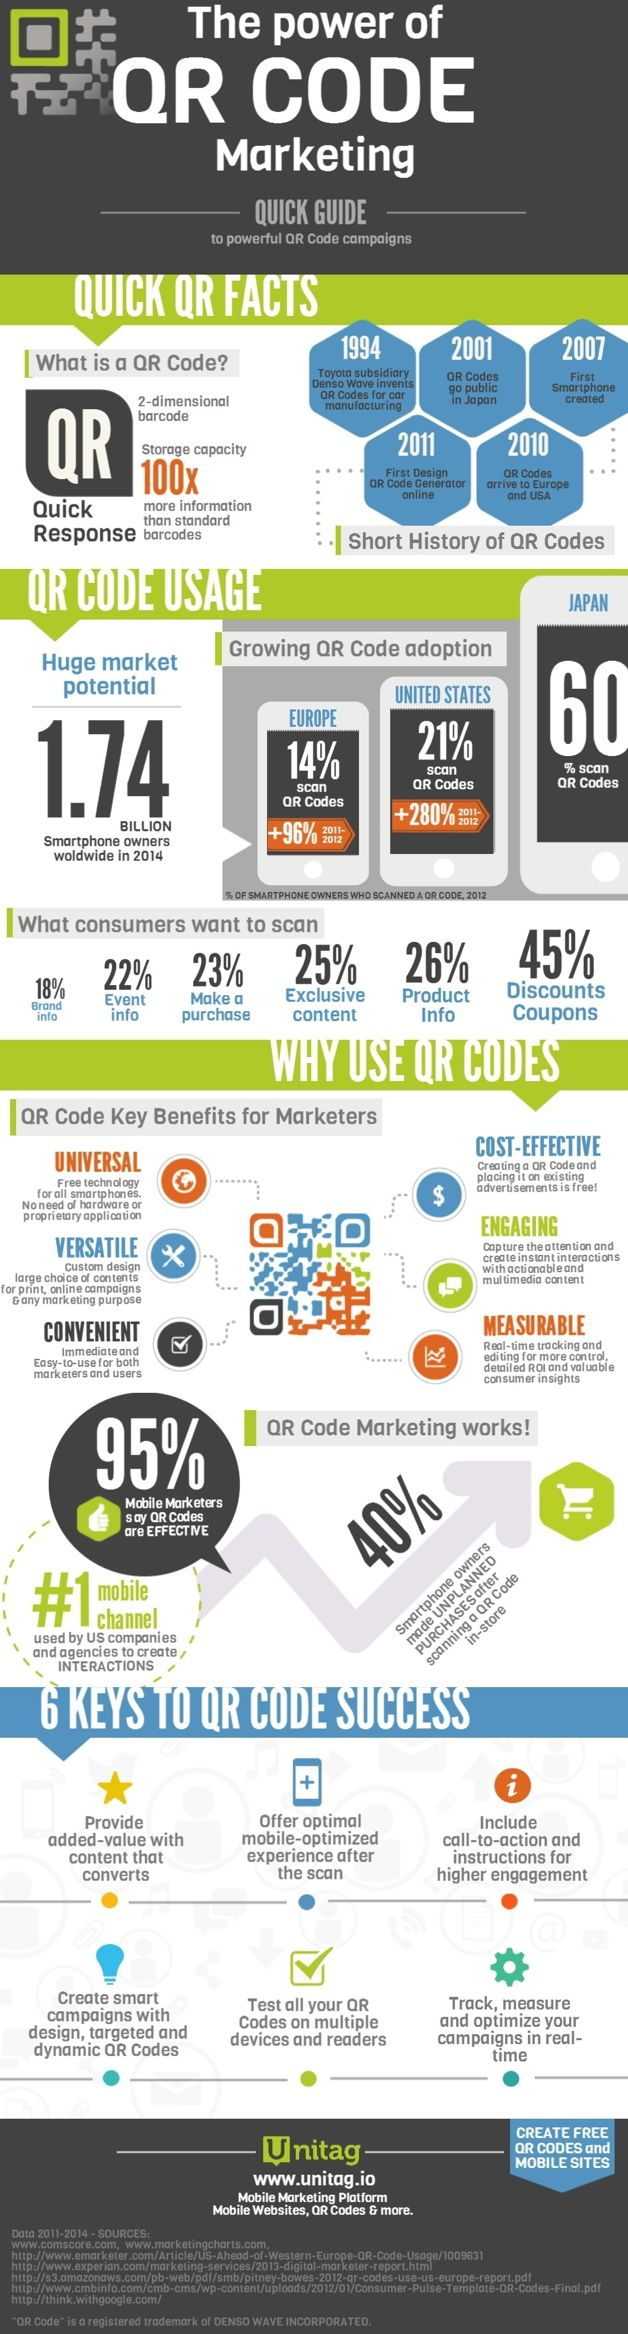 The power of QR code marketing | Mobile Industry | Mobile Entertainment